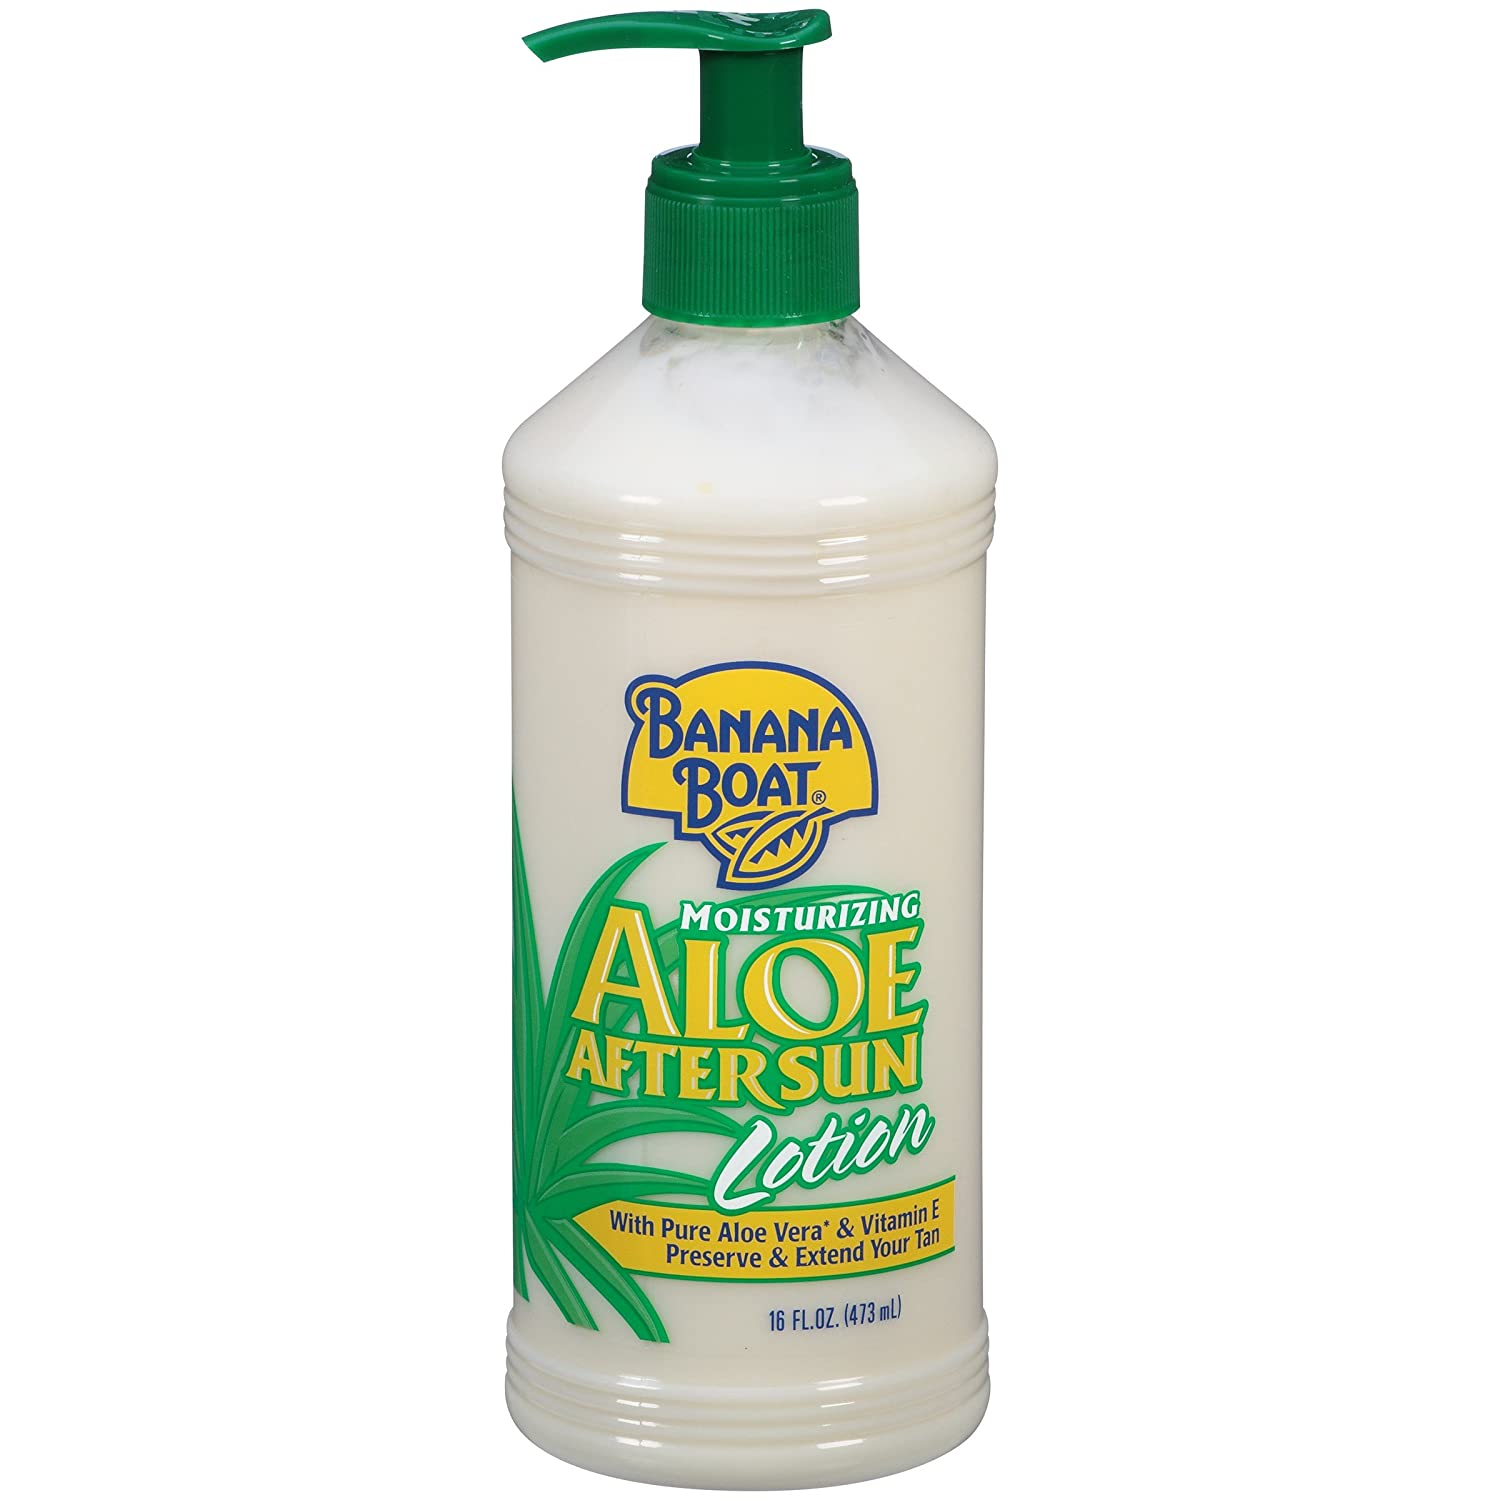 Aloe Lotion After Sun Aloe After Sun Lotion